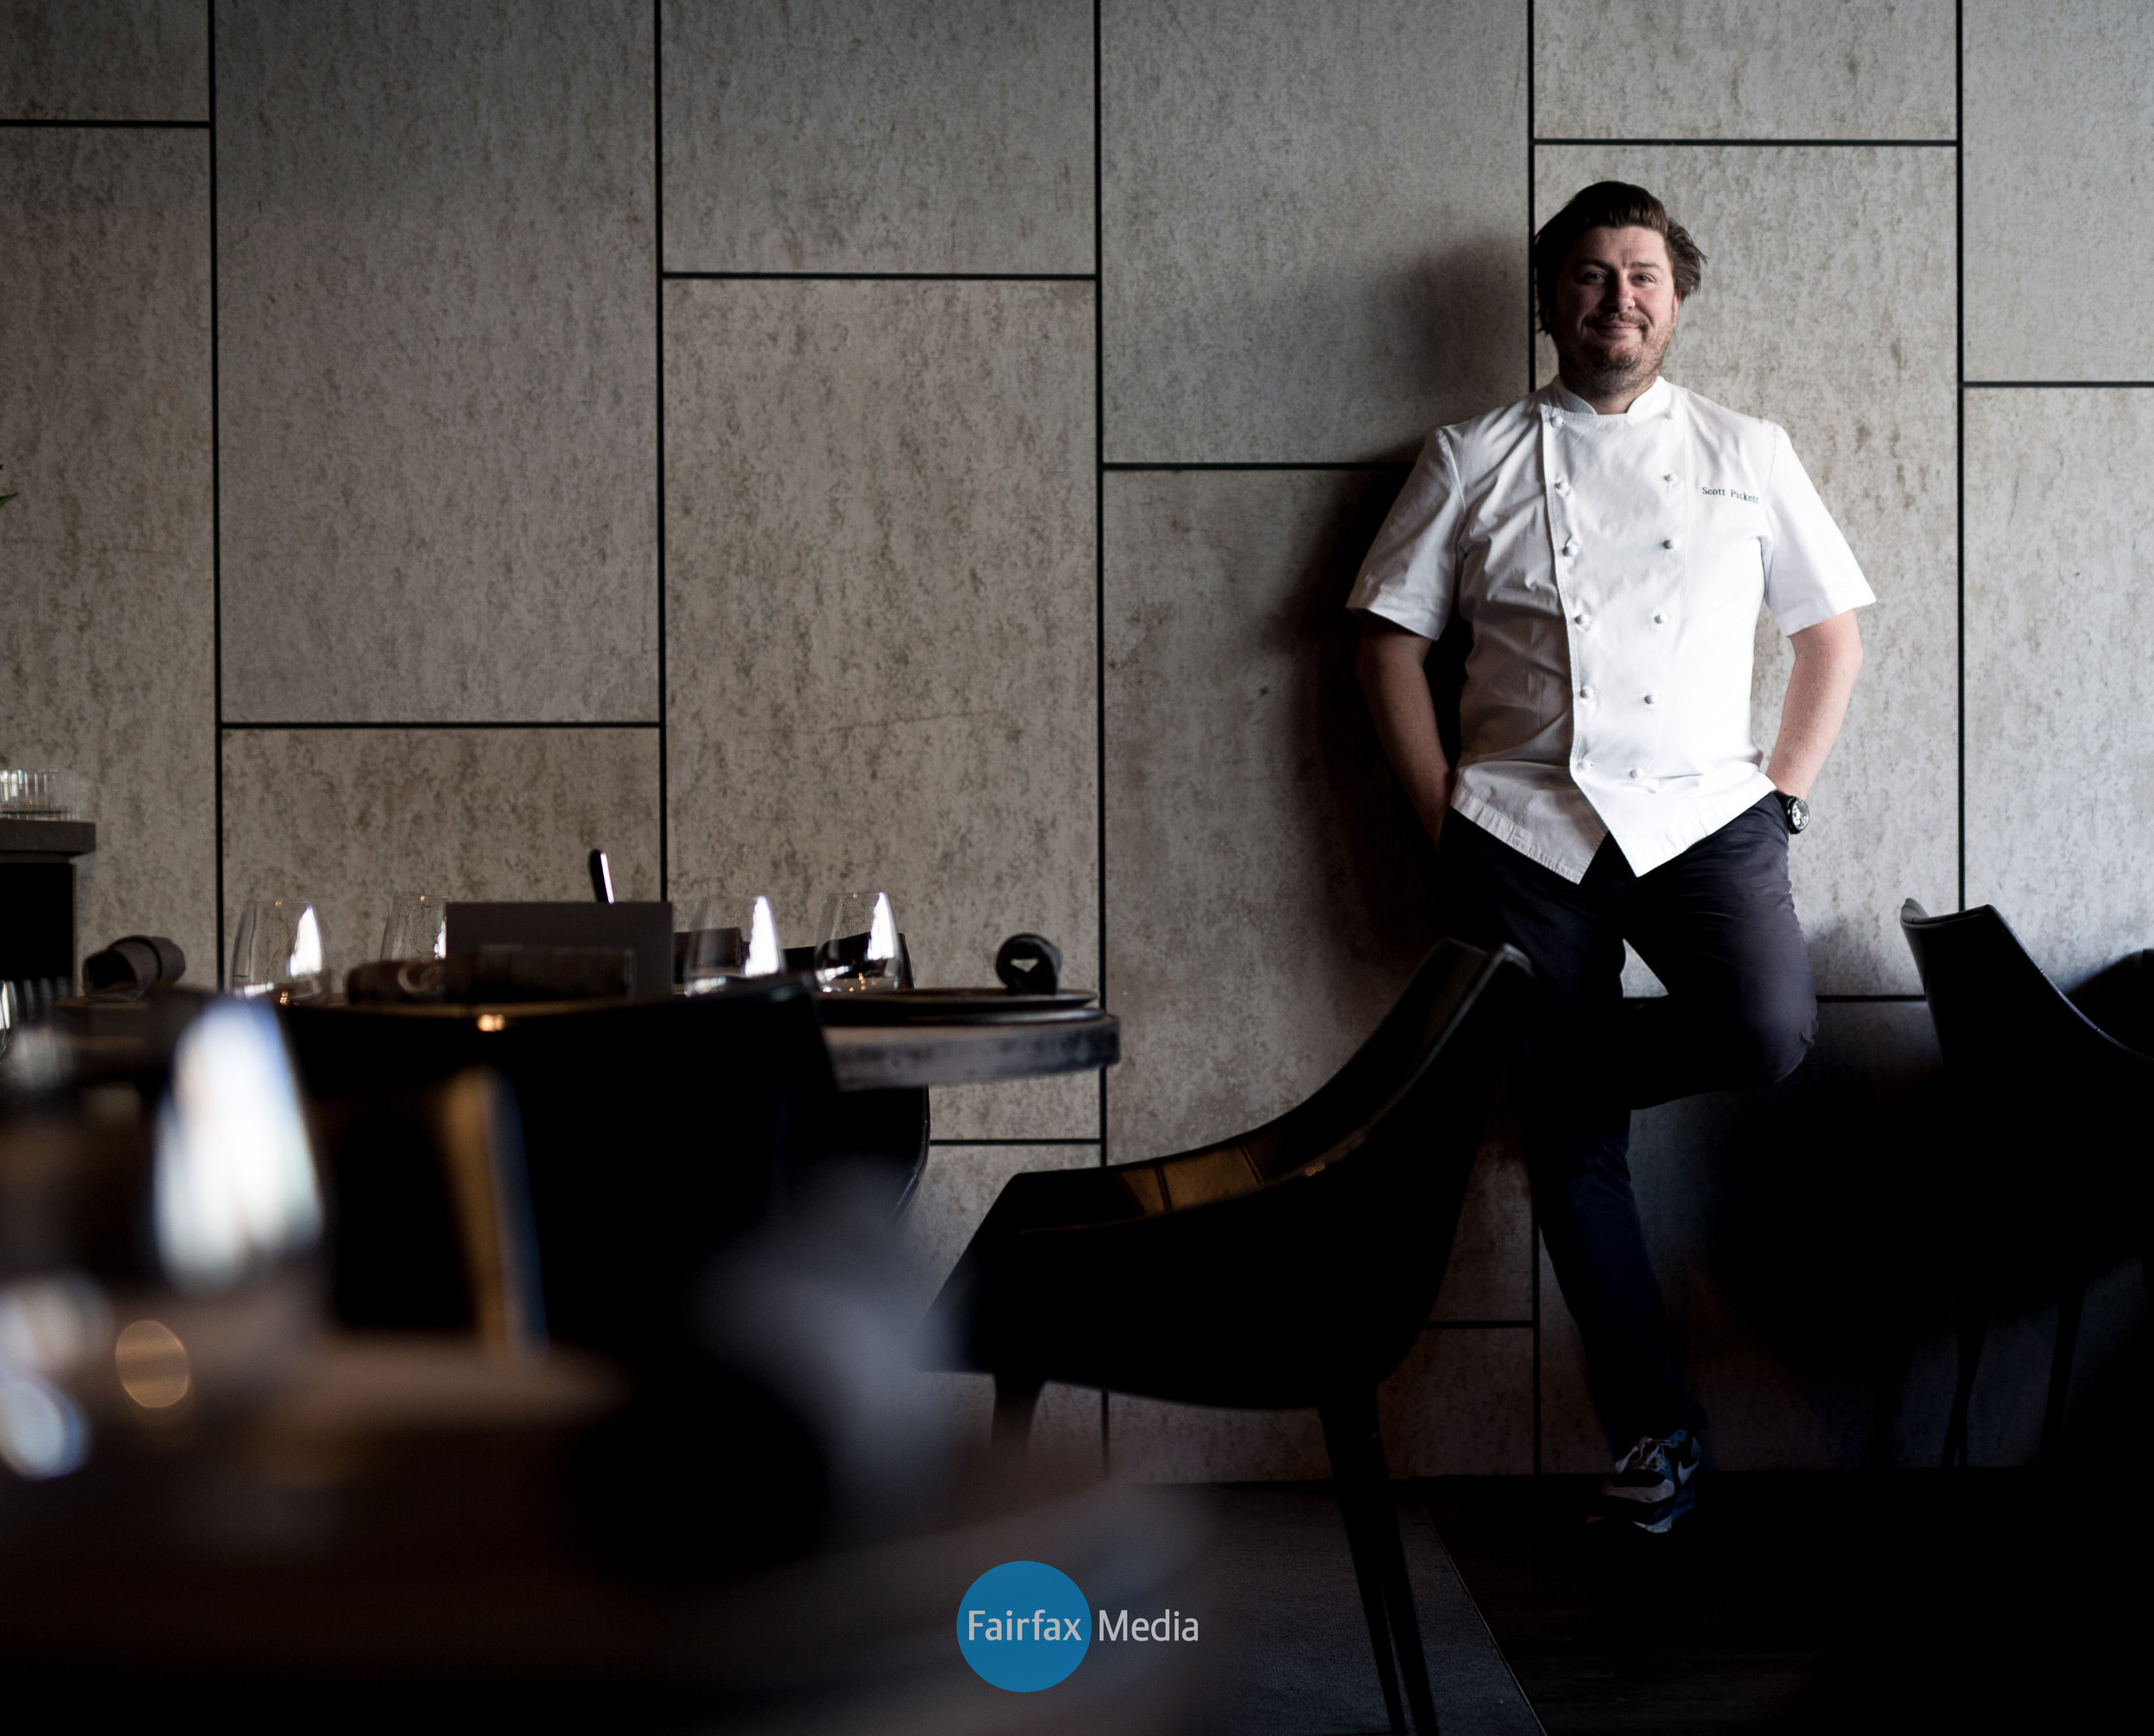 Portrait of famous chef Scott Pickett in his restaurant wearing chef whites and leaning against the wall